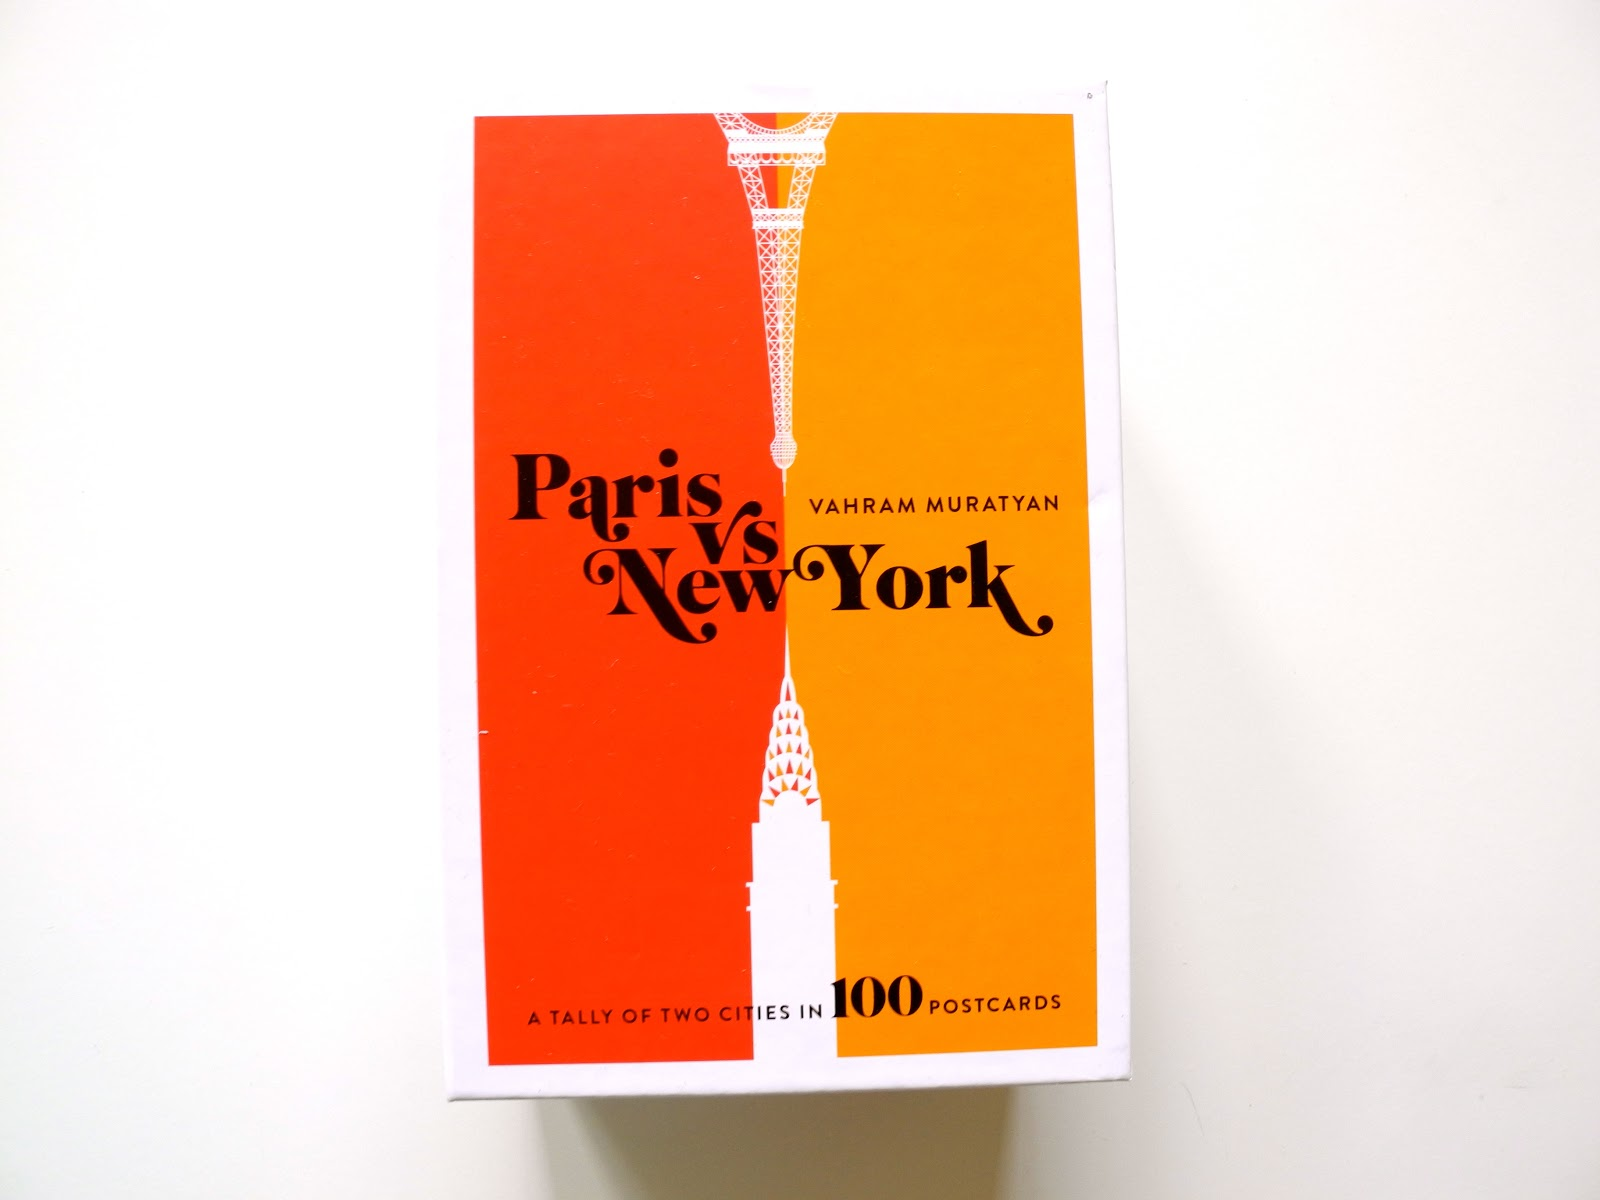 THE POSTCARDS - 100 PARIS VS NEW YORK POSTCARDS